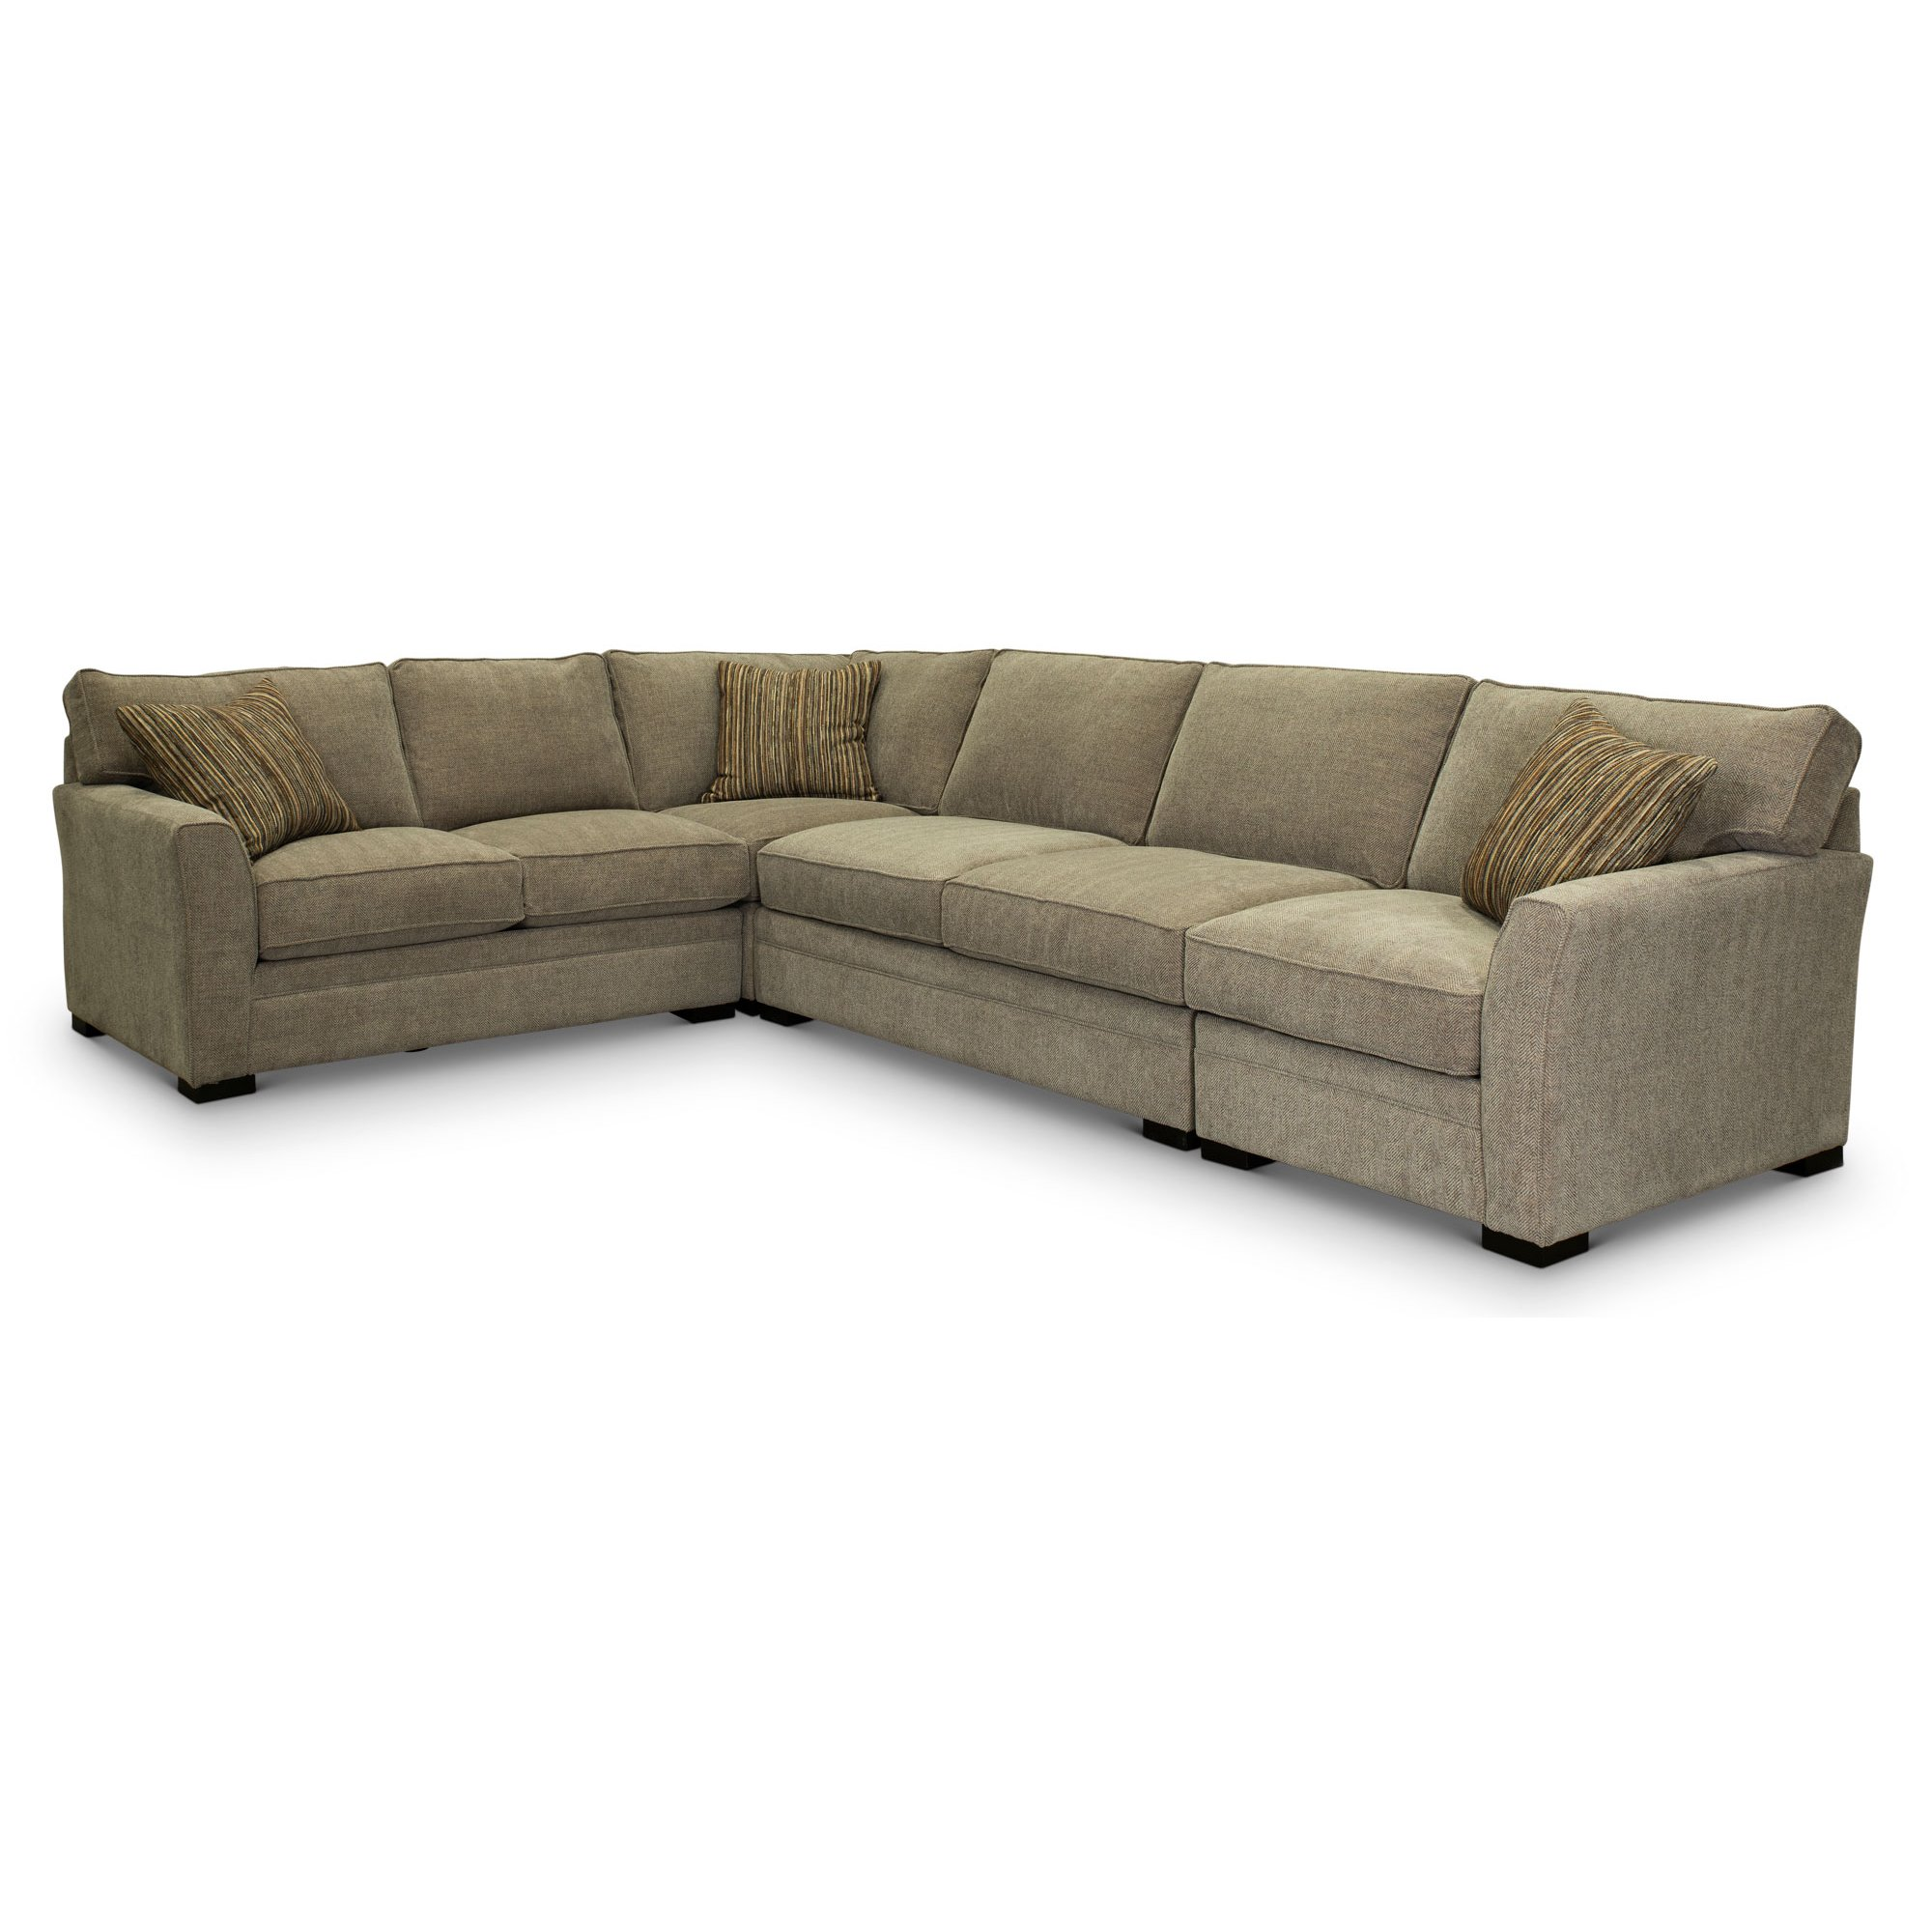 sports shoes b69d8 61a36 Taupe Gray 4 Piece Sectional Sofa with LAF Loveseat - Scorpio